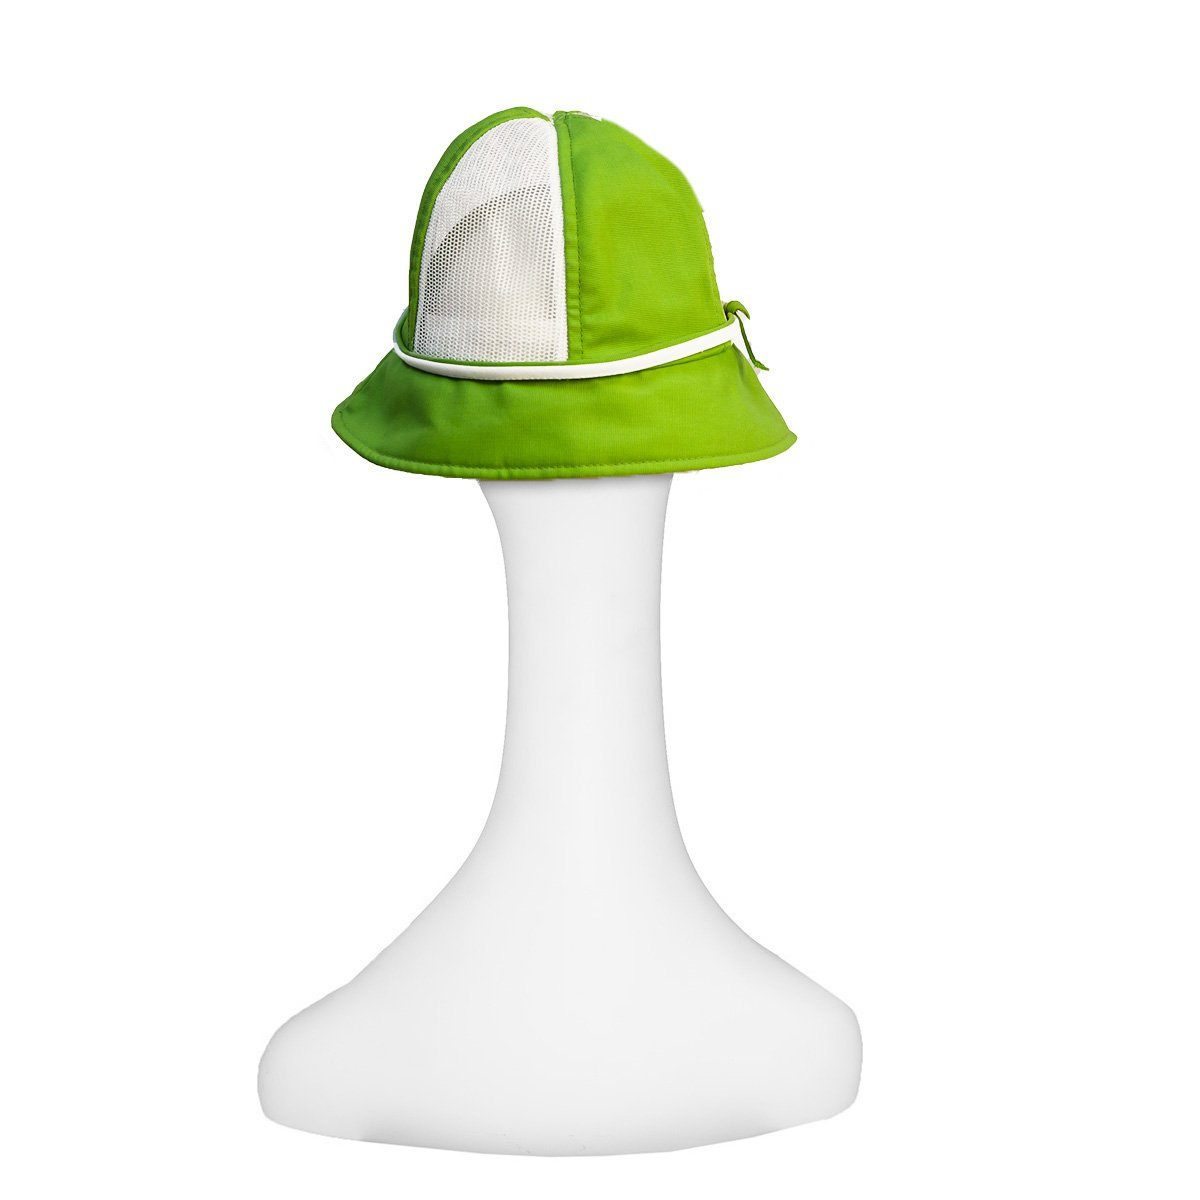 Vintage 70s Bright Green Golf - Tennis Hat by Happy Cappers